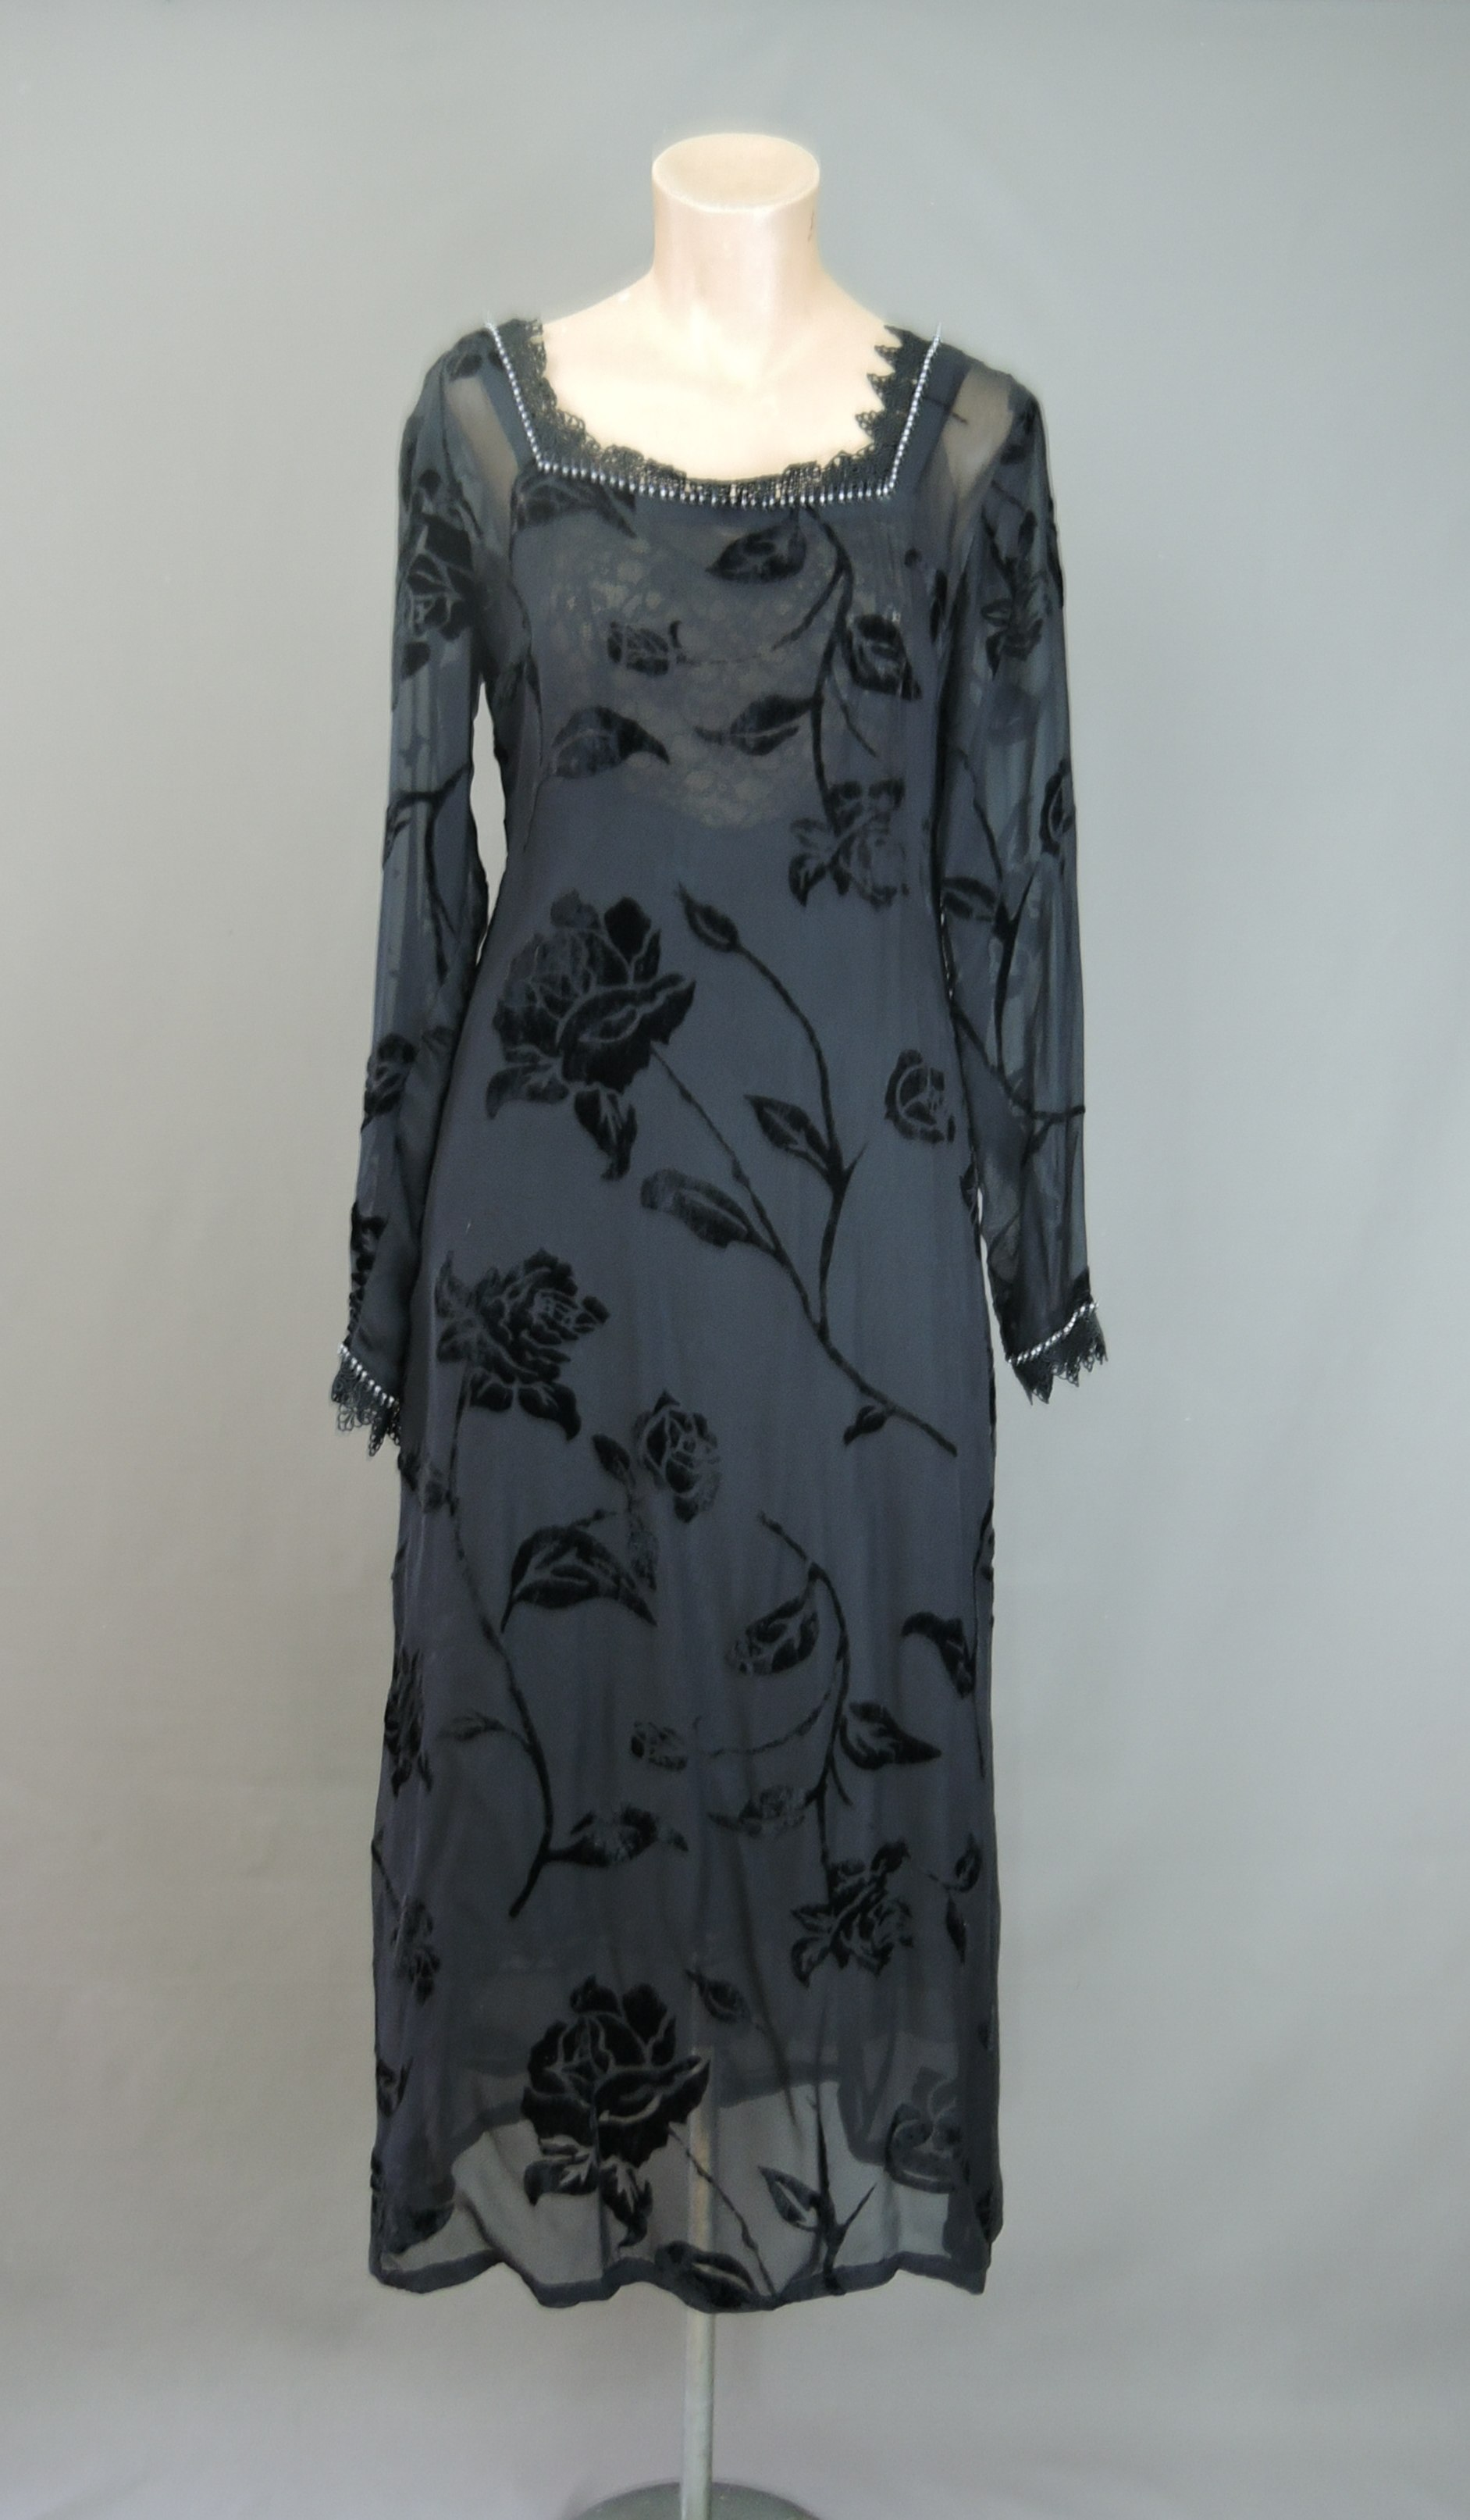 Vintage Sheer Black Dress, Velvet Floral with Lace and Rhinestones, fits 34 inch bust